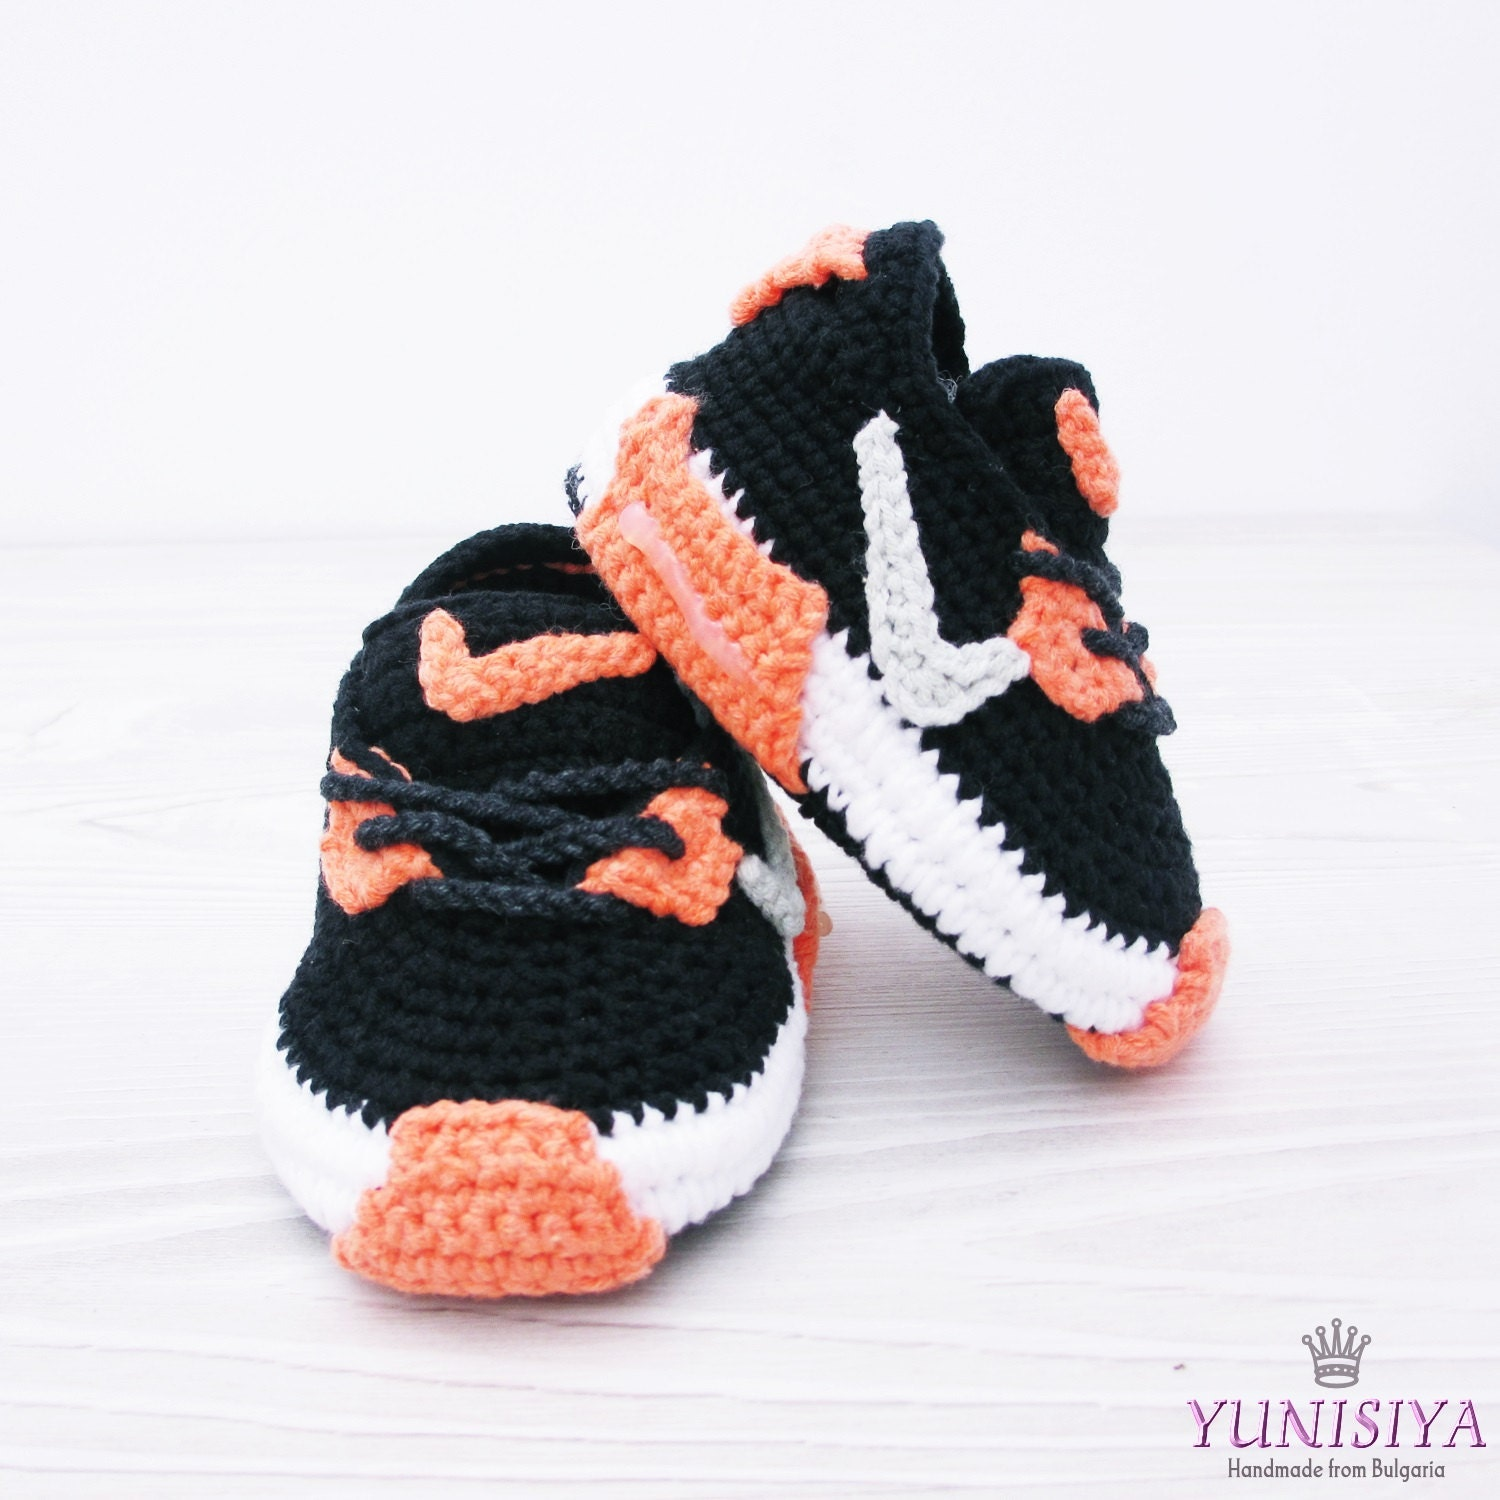 Crochet Baby Shoes Baby Street Shoes Baby Booties Athletic